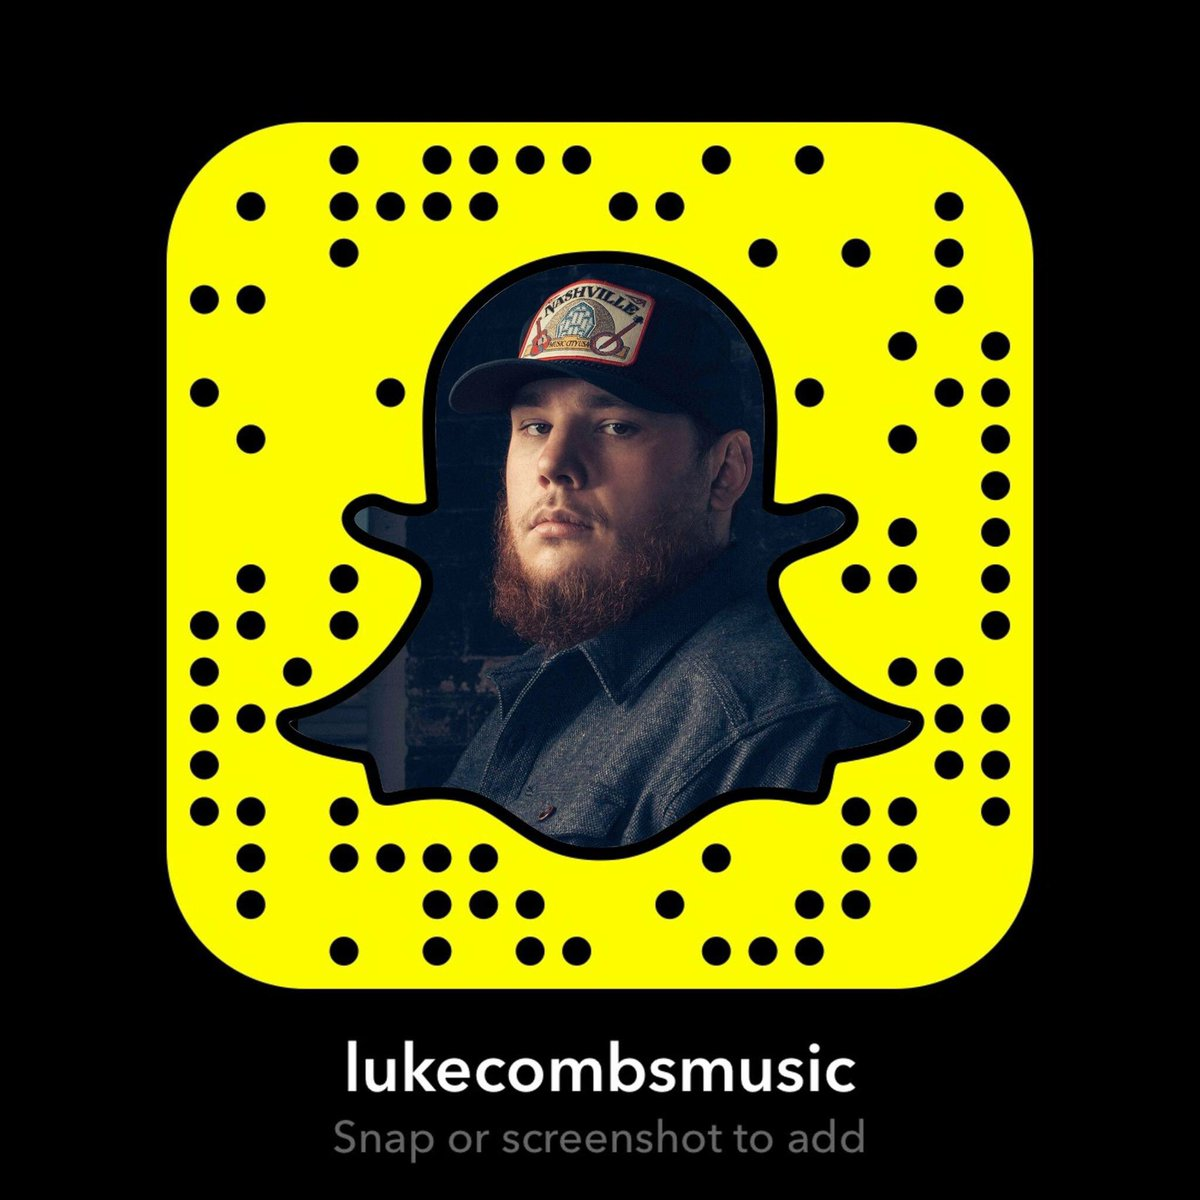 Luke combs on twitter want details on two big announcements want details on two big announcements add me on snapchat lukecombsmusic to find out first reply with what you think it is m4hsunfo